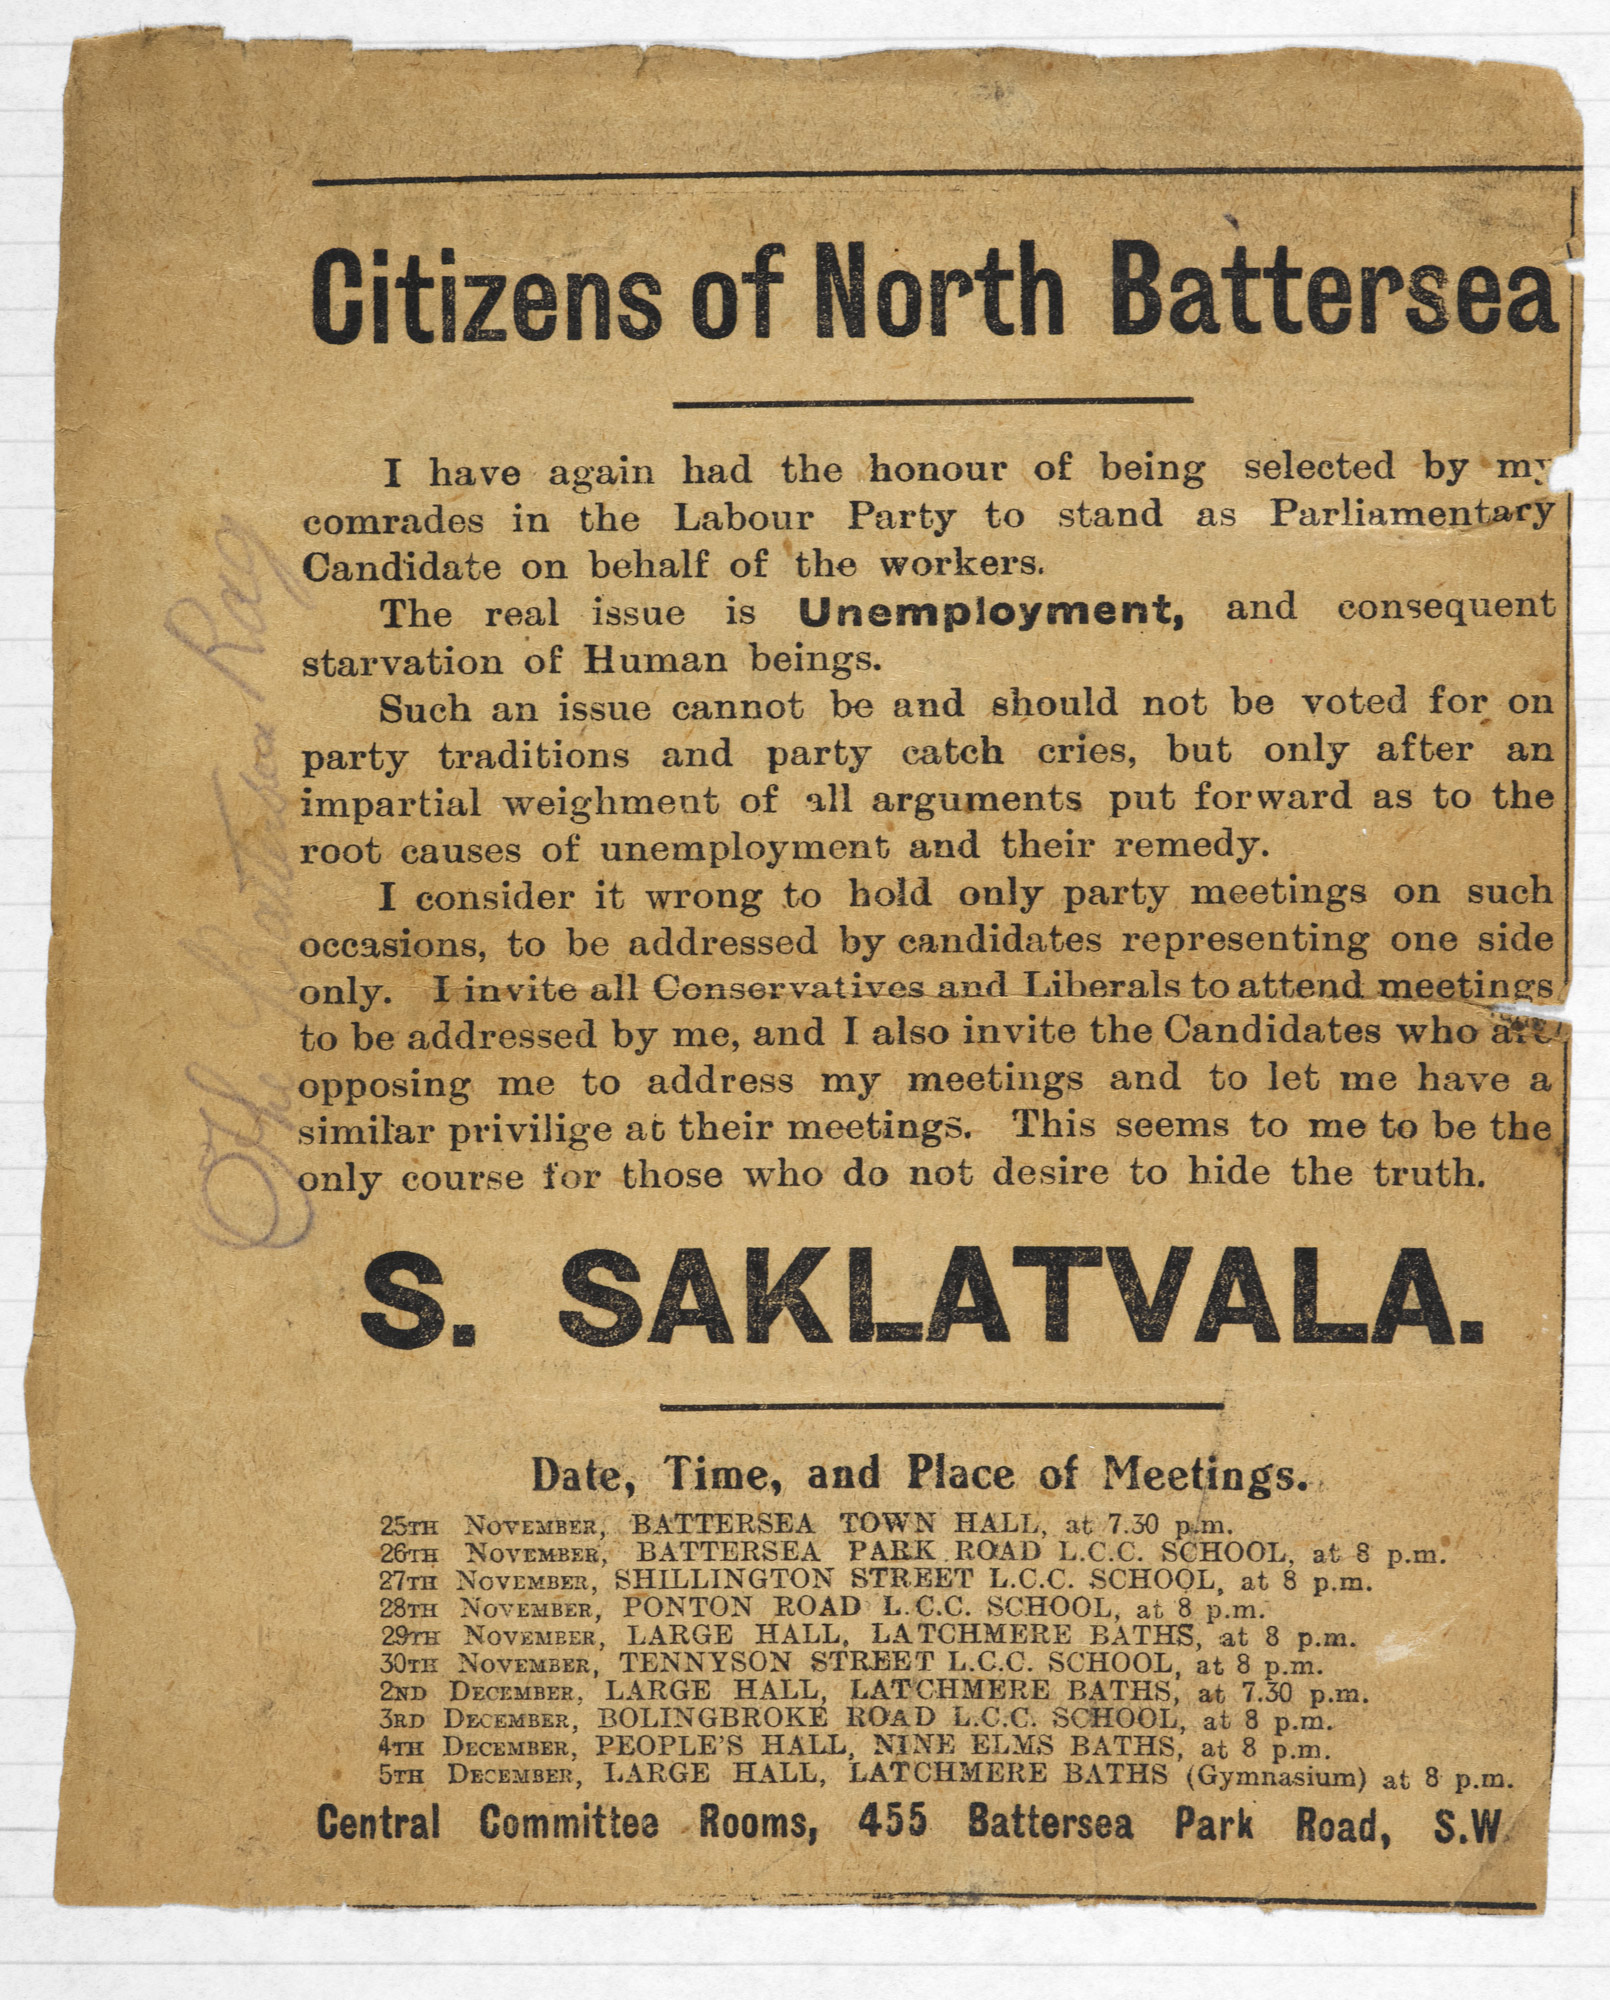 Advertisement for Saklatvala's political campaign in 1931